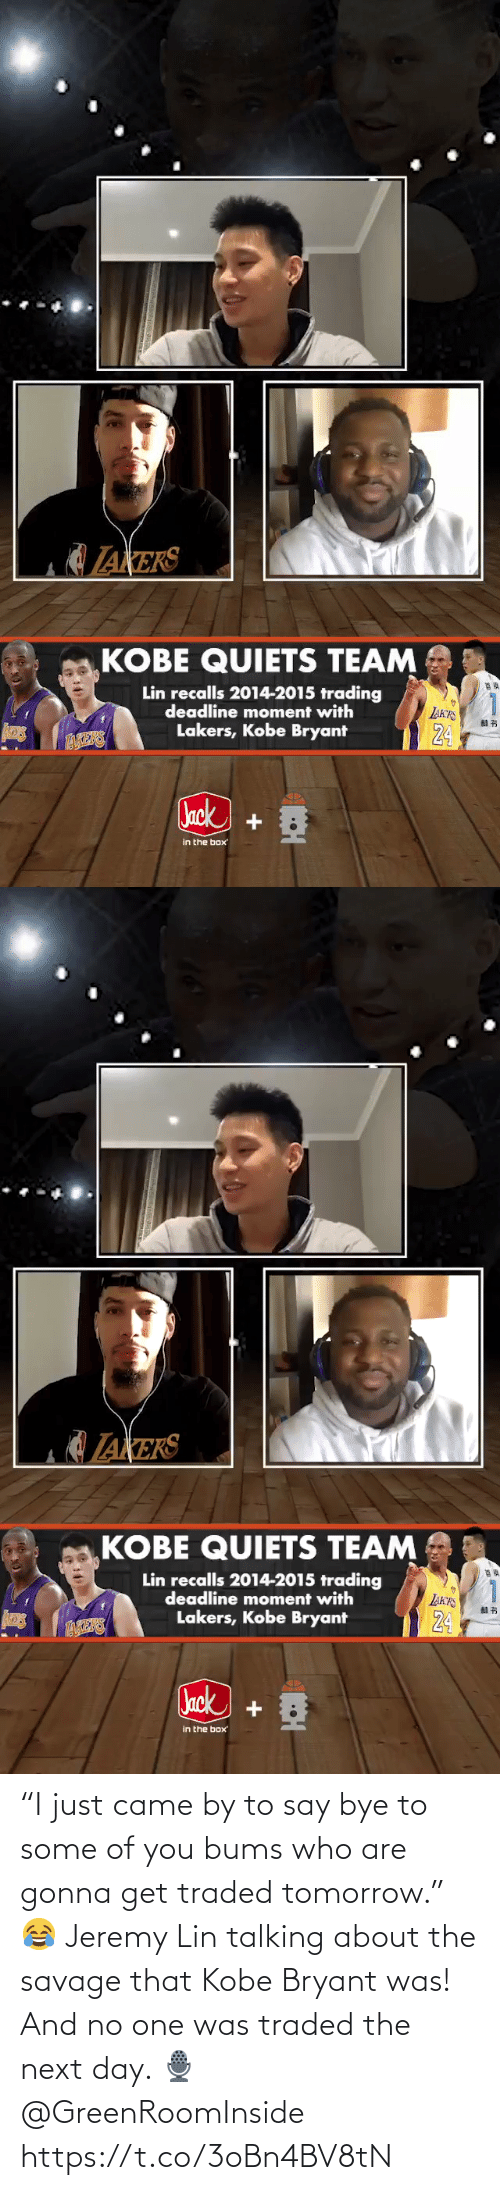 """Jeremy Lin: """"I just came by to say bye to some of you bums who are gonna get traded tomorrow.""""   😂 Jeremy Lin talking about the savage that Kobe Bryant was! And no one was traded the next day.    🎙 @GreenRoomInside    https://t.co/3oBn4BV8tN"""